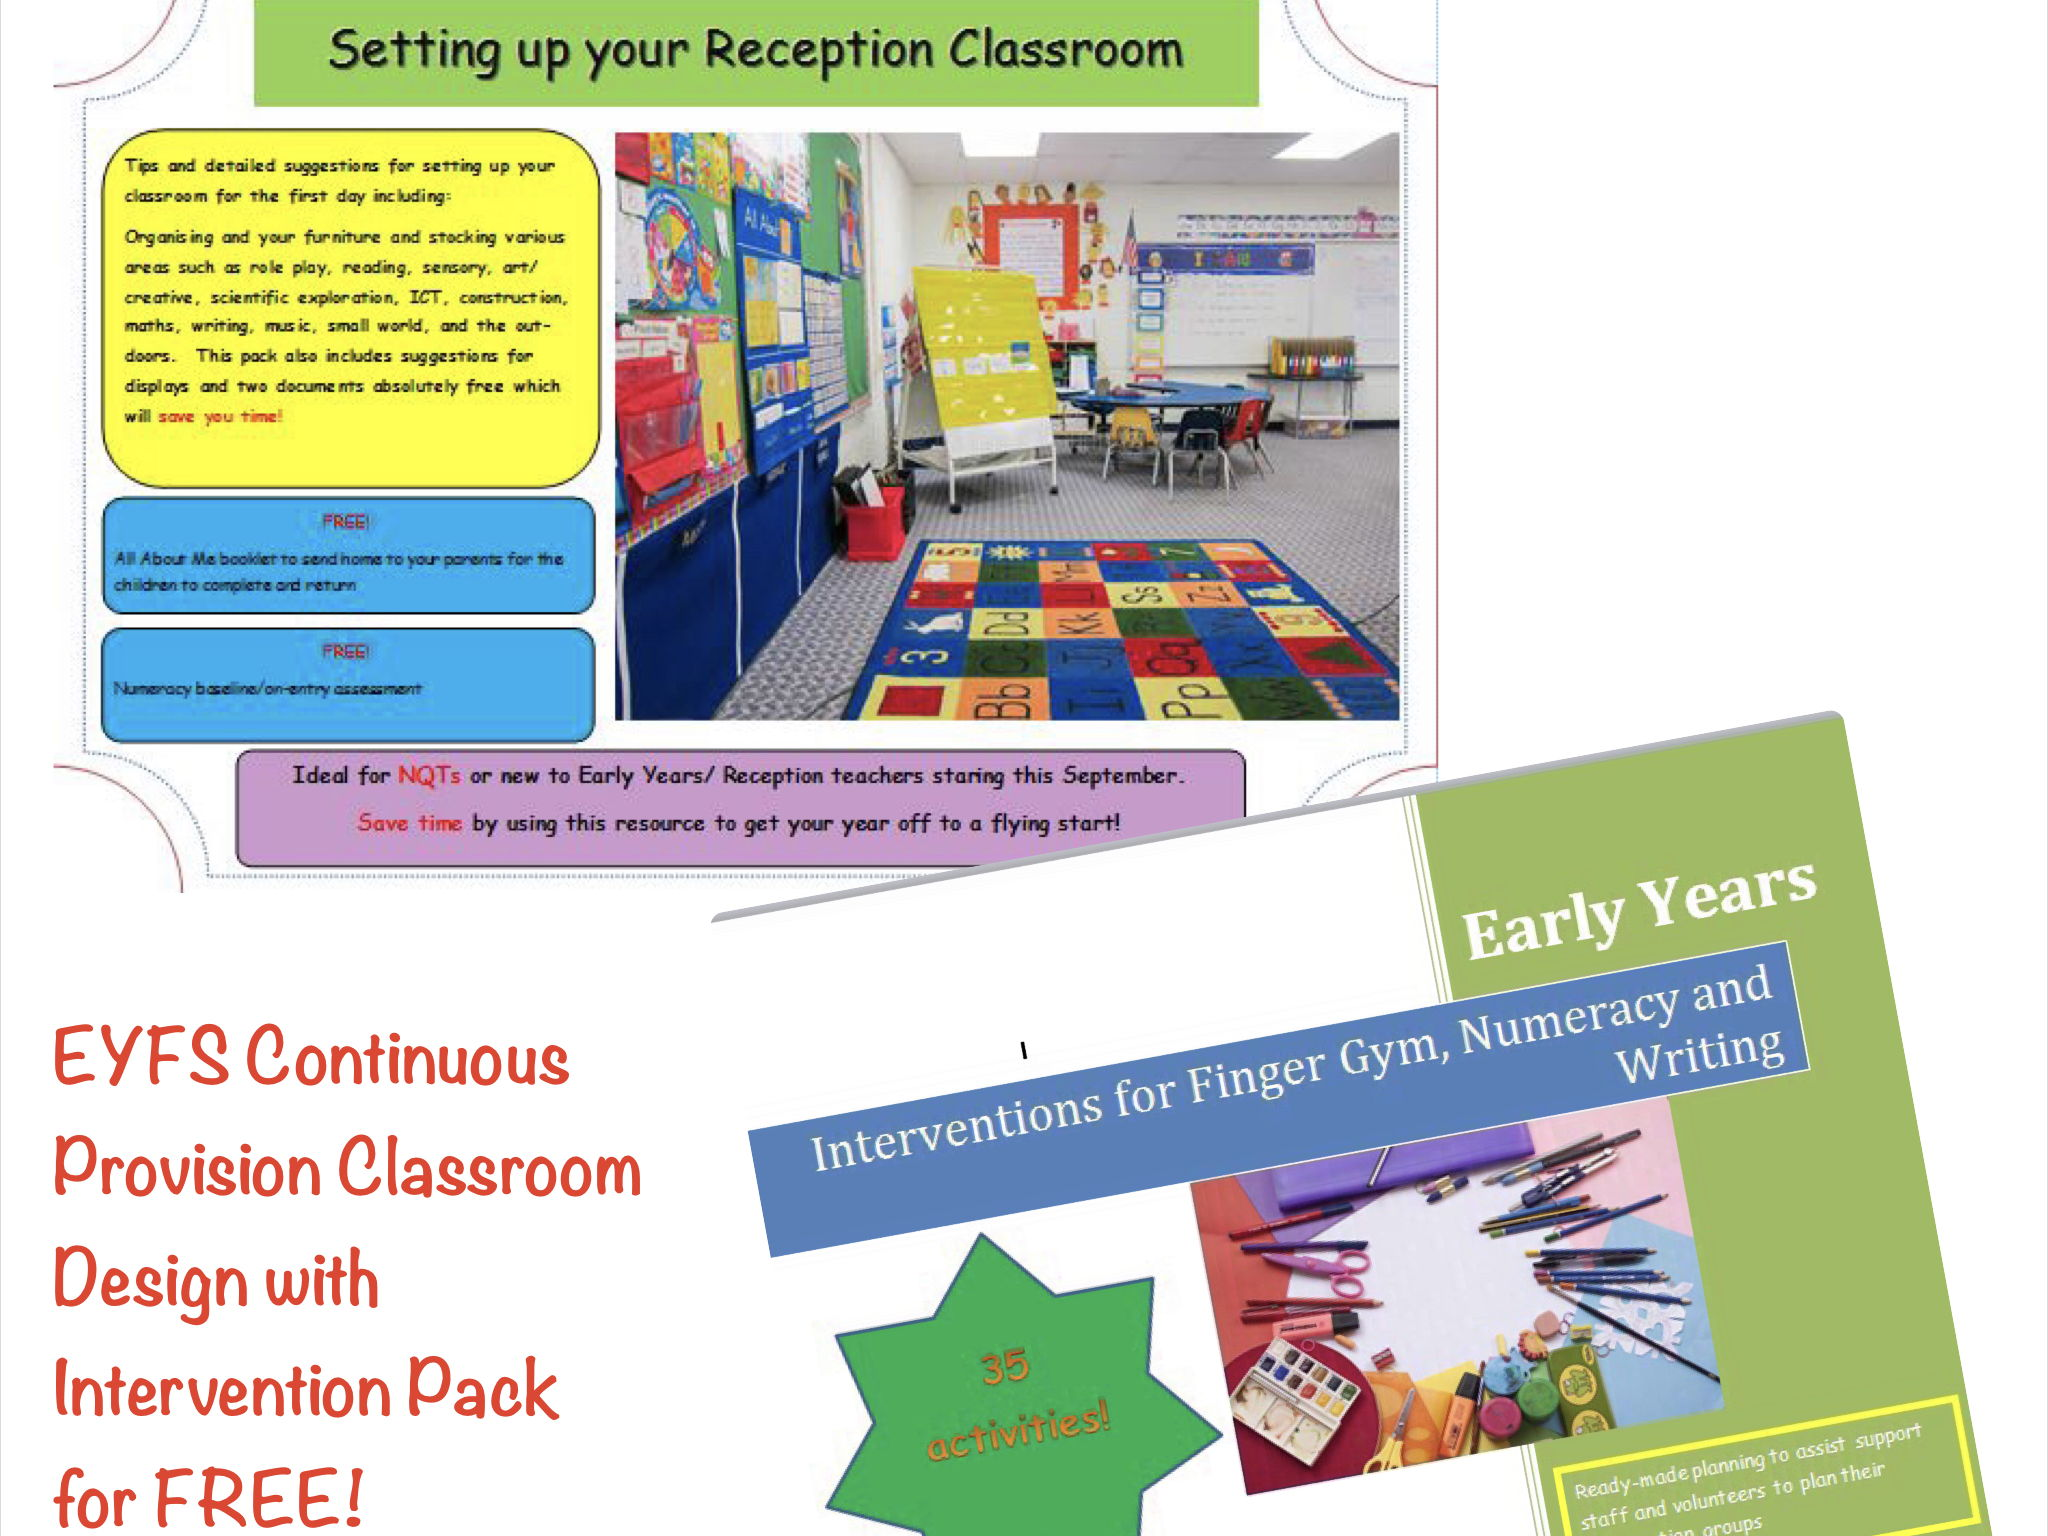 EYFS : Continuous Provision Classroom Design with Intervention Pack FREE!